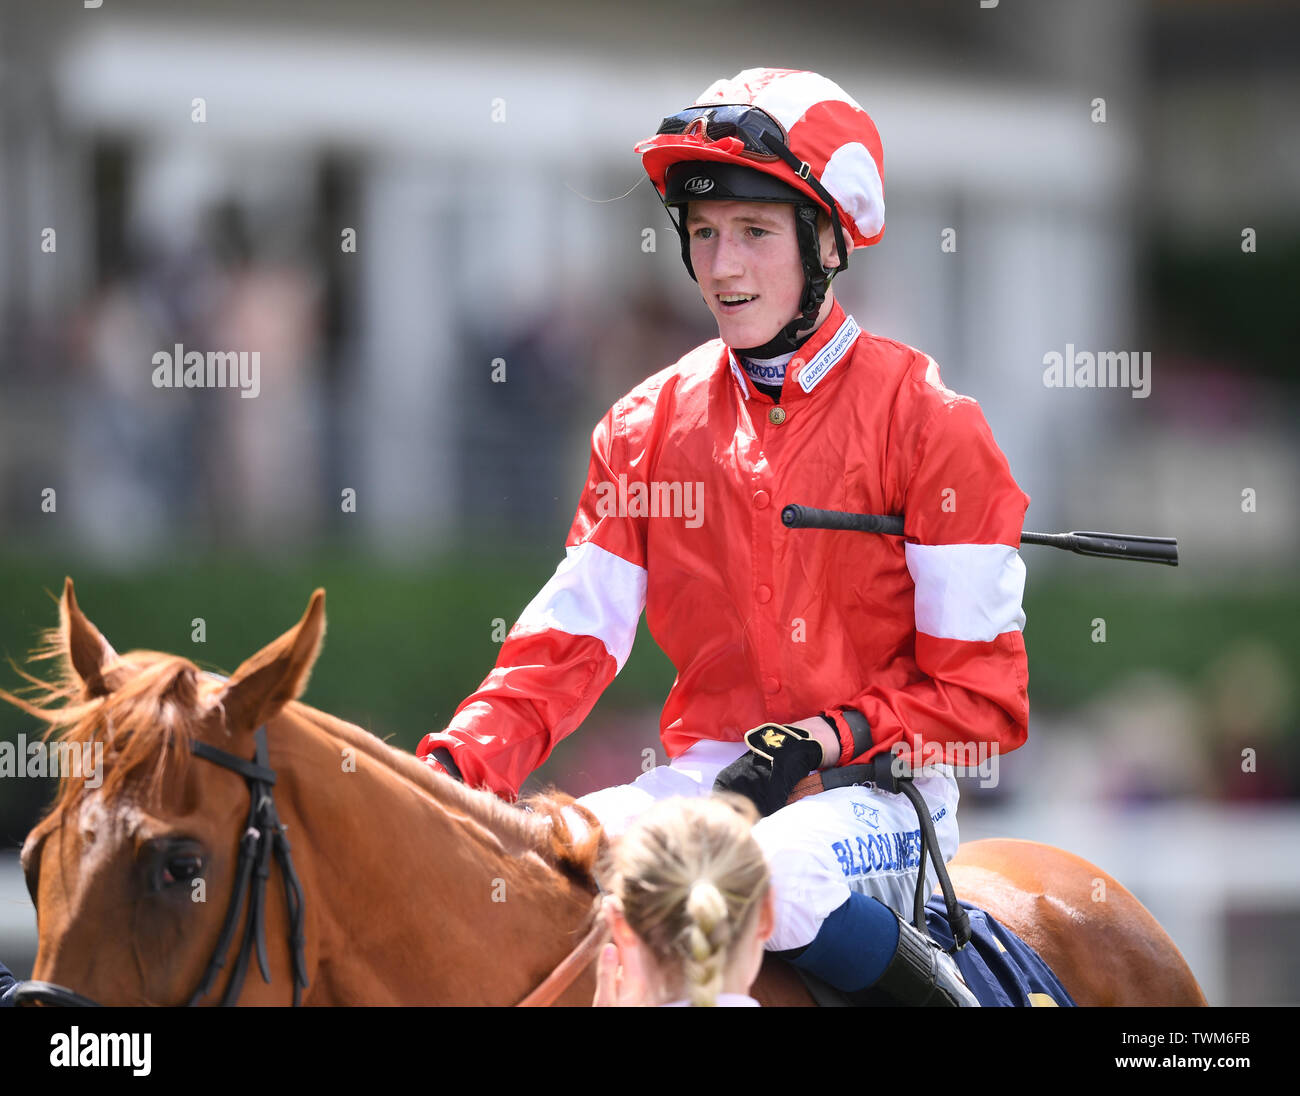 Ascot Racecourse, Windsor, UK. 21st June, 2019. Royal Ascot Horse racing; Race1; The Albany Stakes; Daahyeh Ridden By David Egan wins The Albany Stakes Credit: Action Plus Sports/Alamy Live News Stock Photo